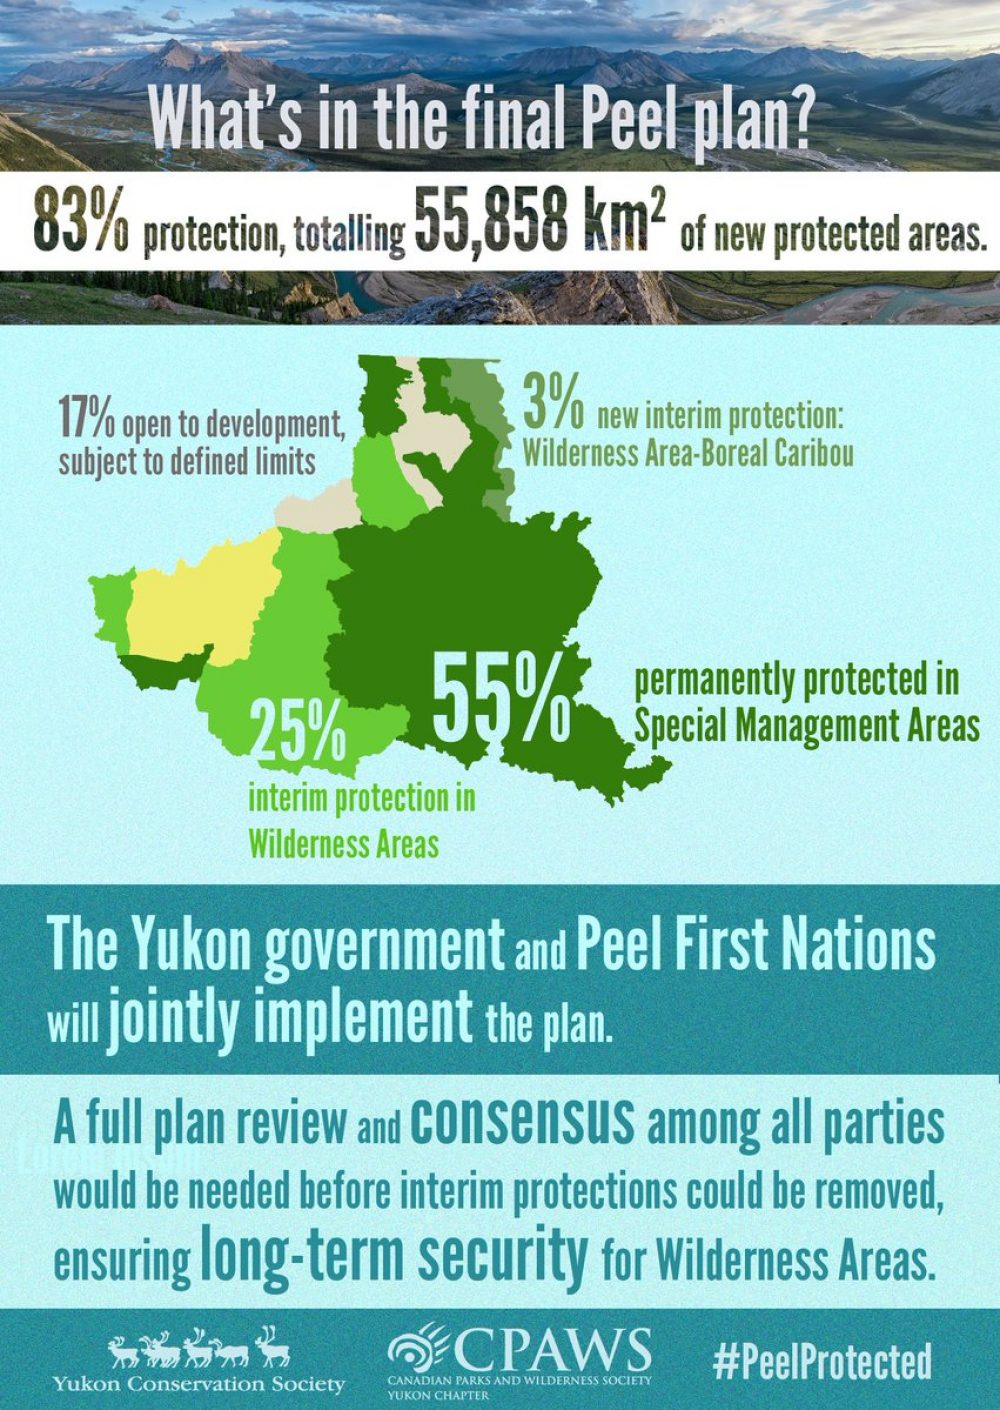 What's in the Final Peel Plan infographic